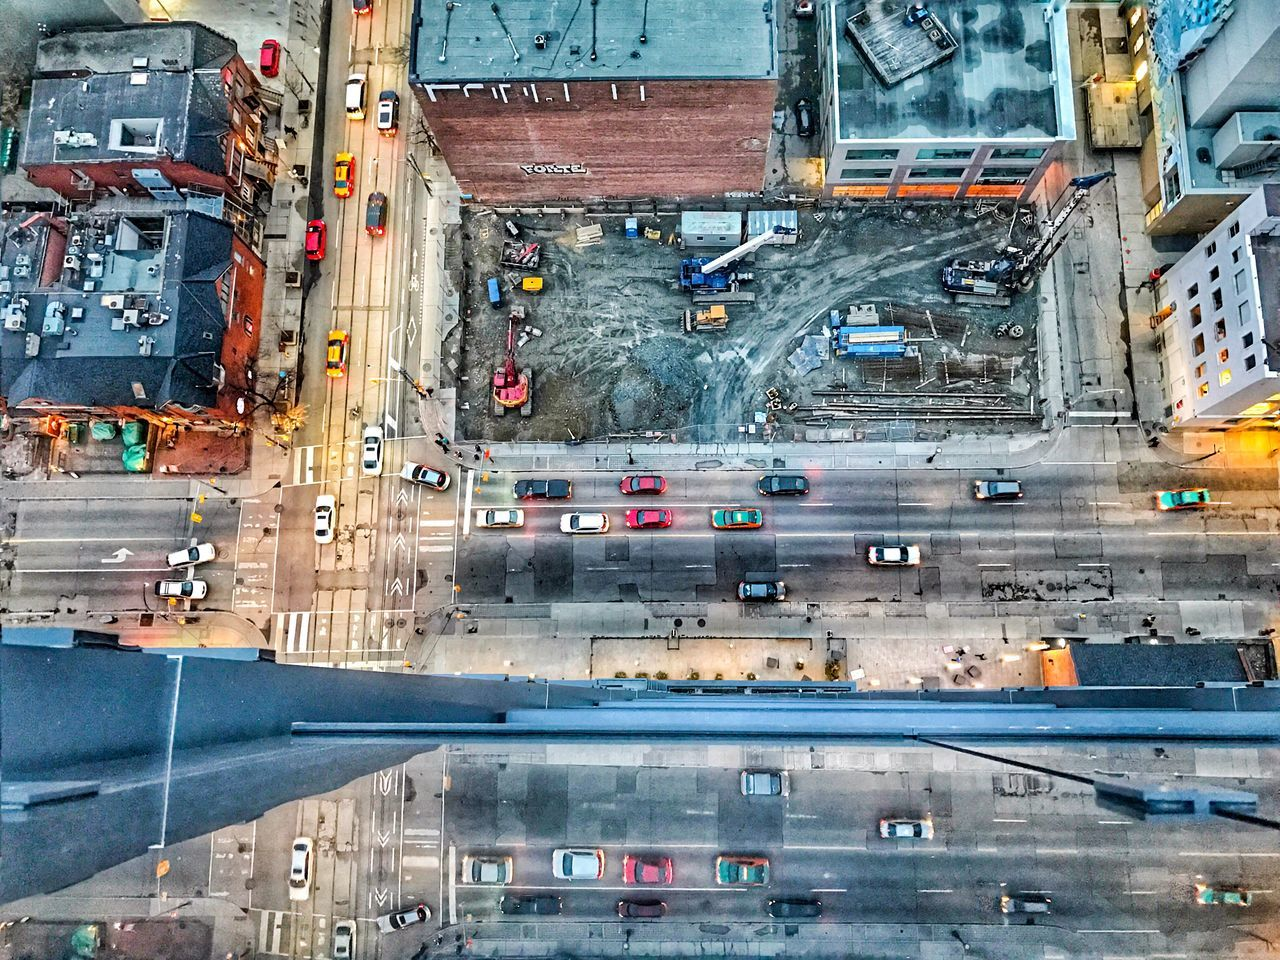 Flying High City Car Aerial View Road Transportation Outdoors Building Exterior Day Architecture No People Cityscape Toronto Downtown Toronto Financial District  Crowded Development Crowded Reflections Mirror Glass Details Illuminated Street Skyscraper